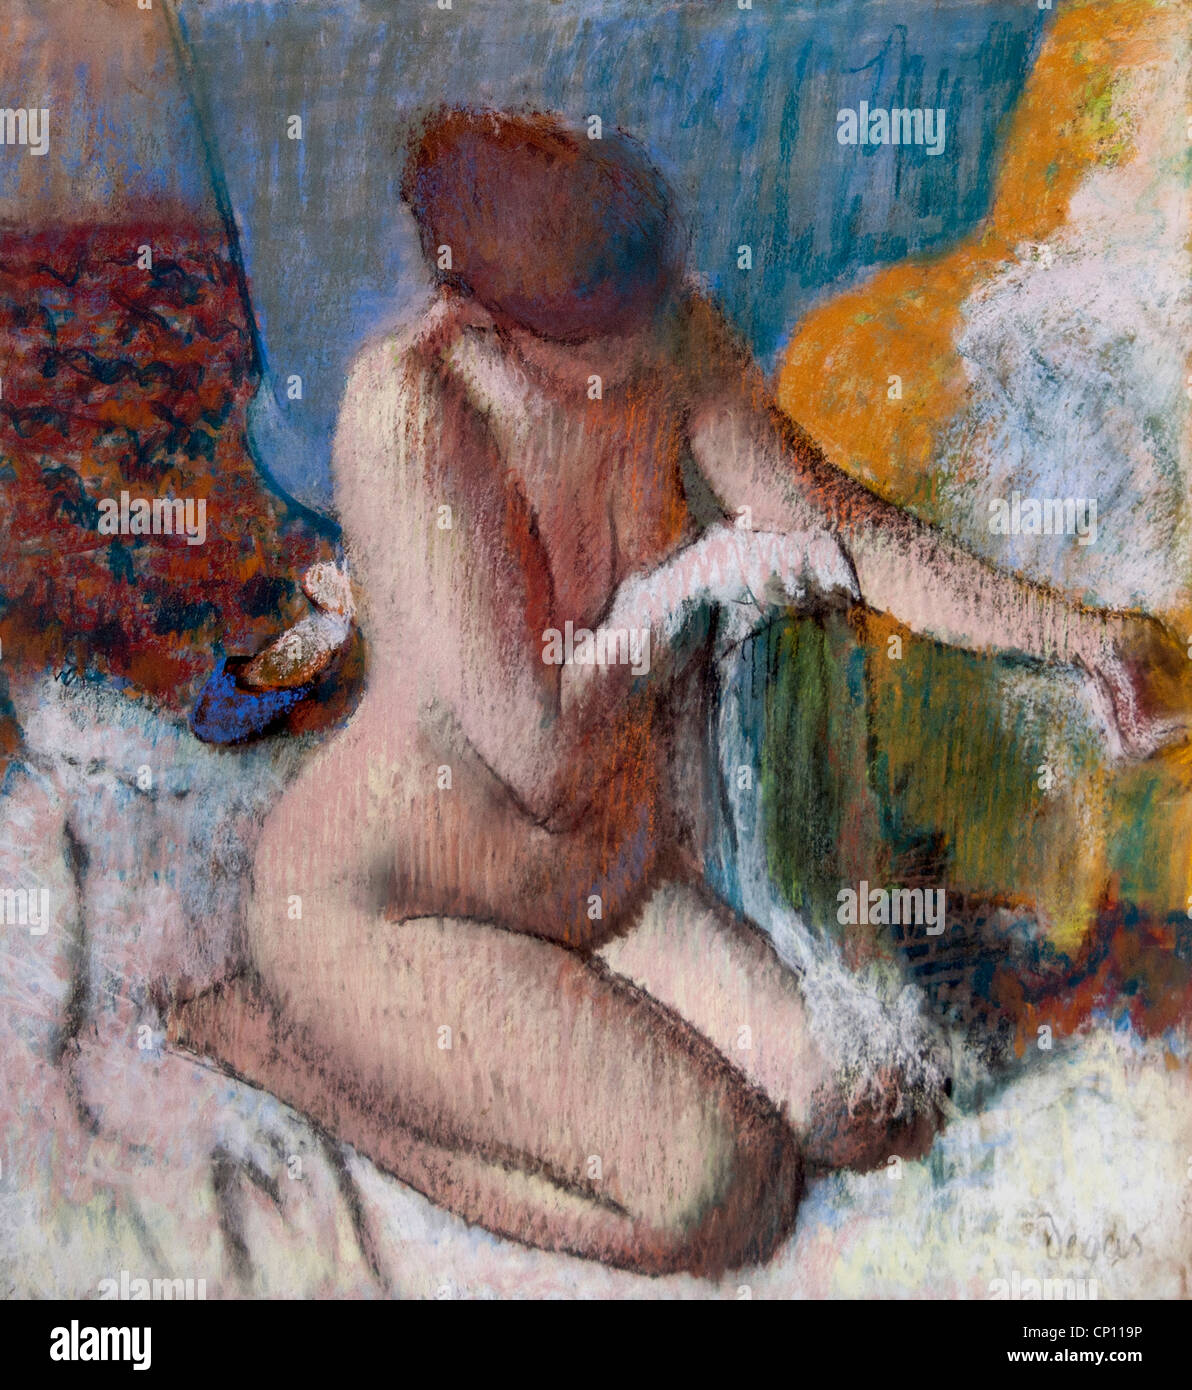 La Sortie du Bain - The output of the Bath by Edgar Degas 1834-1917 France French - Stock Image